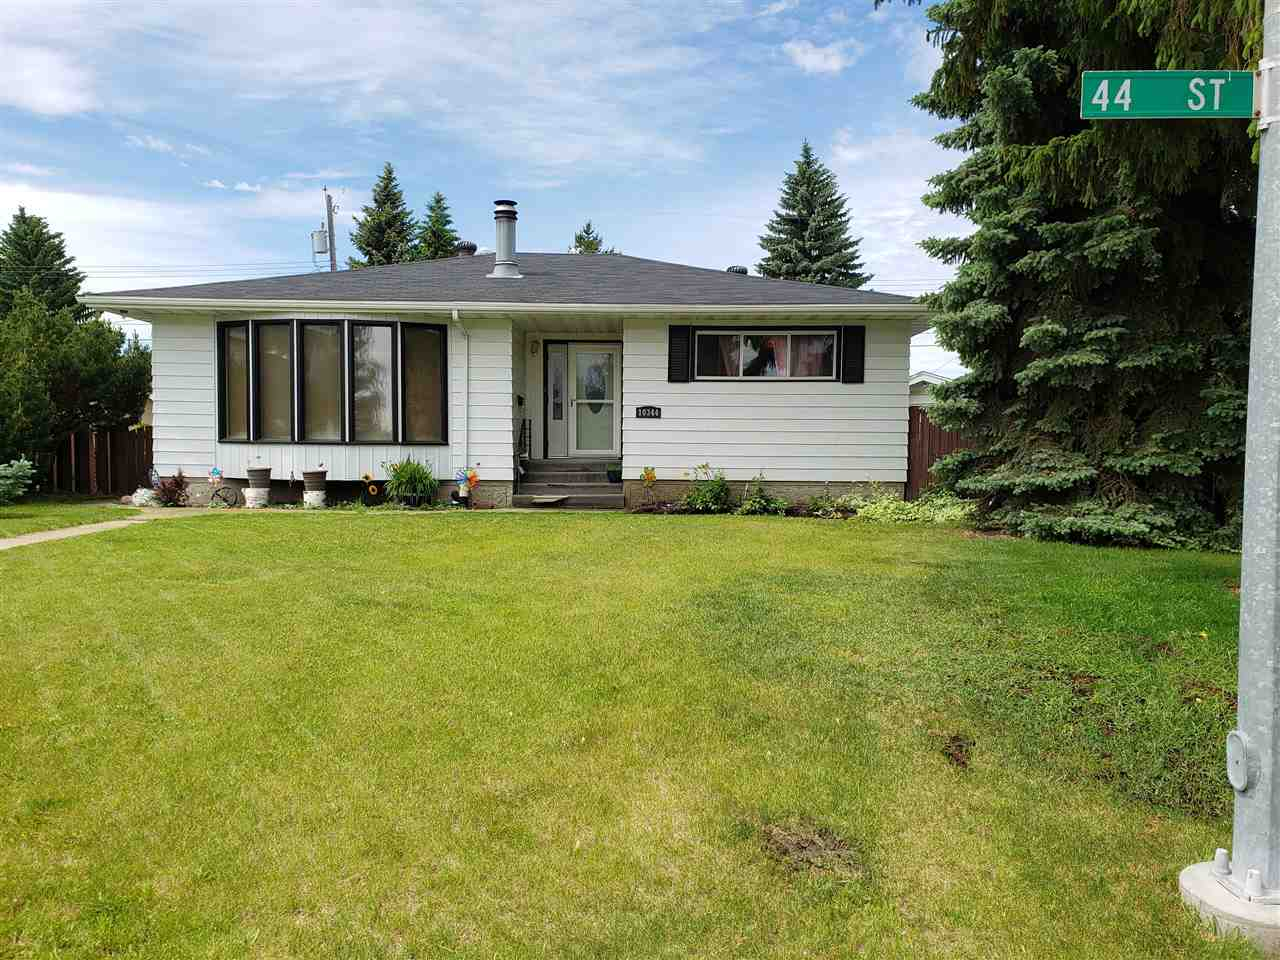 This 2 bedroom 1539 sq feet  open concept bungalow located on a quiet street in gold bar has a newer high efficiency furnace and 60 gallon hot water tank. Kitchen  has stainless steel appliances double gas oven and 5 burner stove highlighted by quartz counter tops, solar tube for added brightness, drinking water tap with 7 filters, air conditioning and hardwood floors through out home. Master bedroom has walk in closet with own ensuite. Home includes a summer kitchen in the basement and 2 additional bedrooms and full bathroom to accommodate the growing family. Back yard is huge on a pie lot, fully landscaped and has a large oversized double garage and RV parking. With a little TLC this house could be your home.  Priced at $ 421,000.00